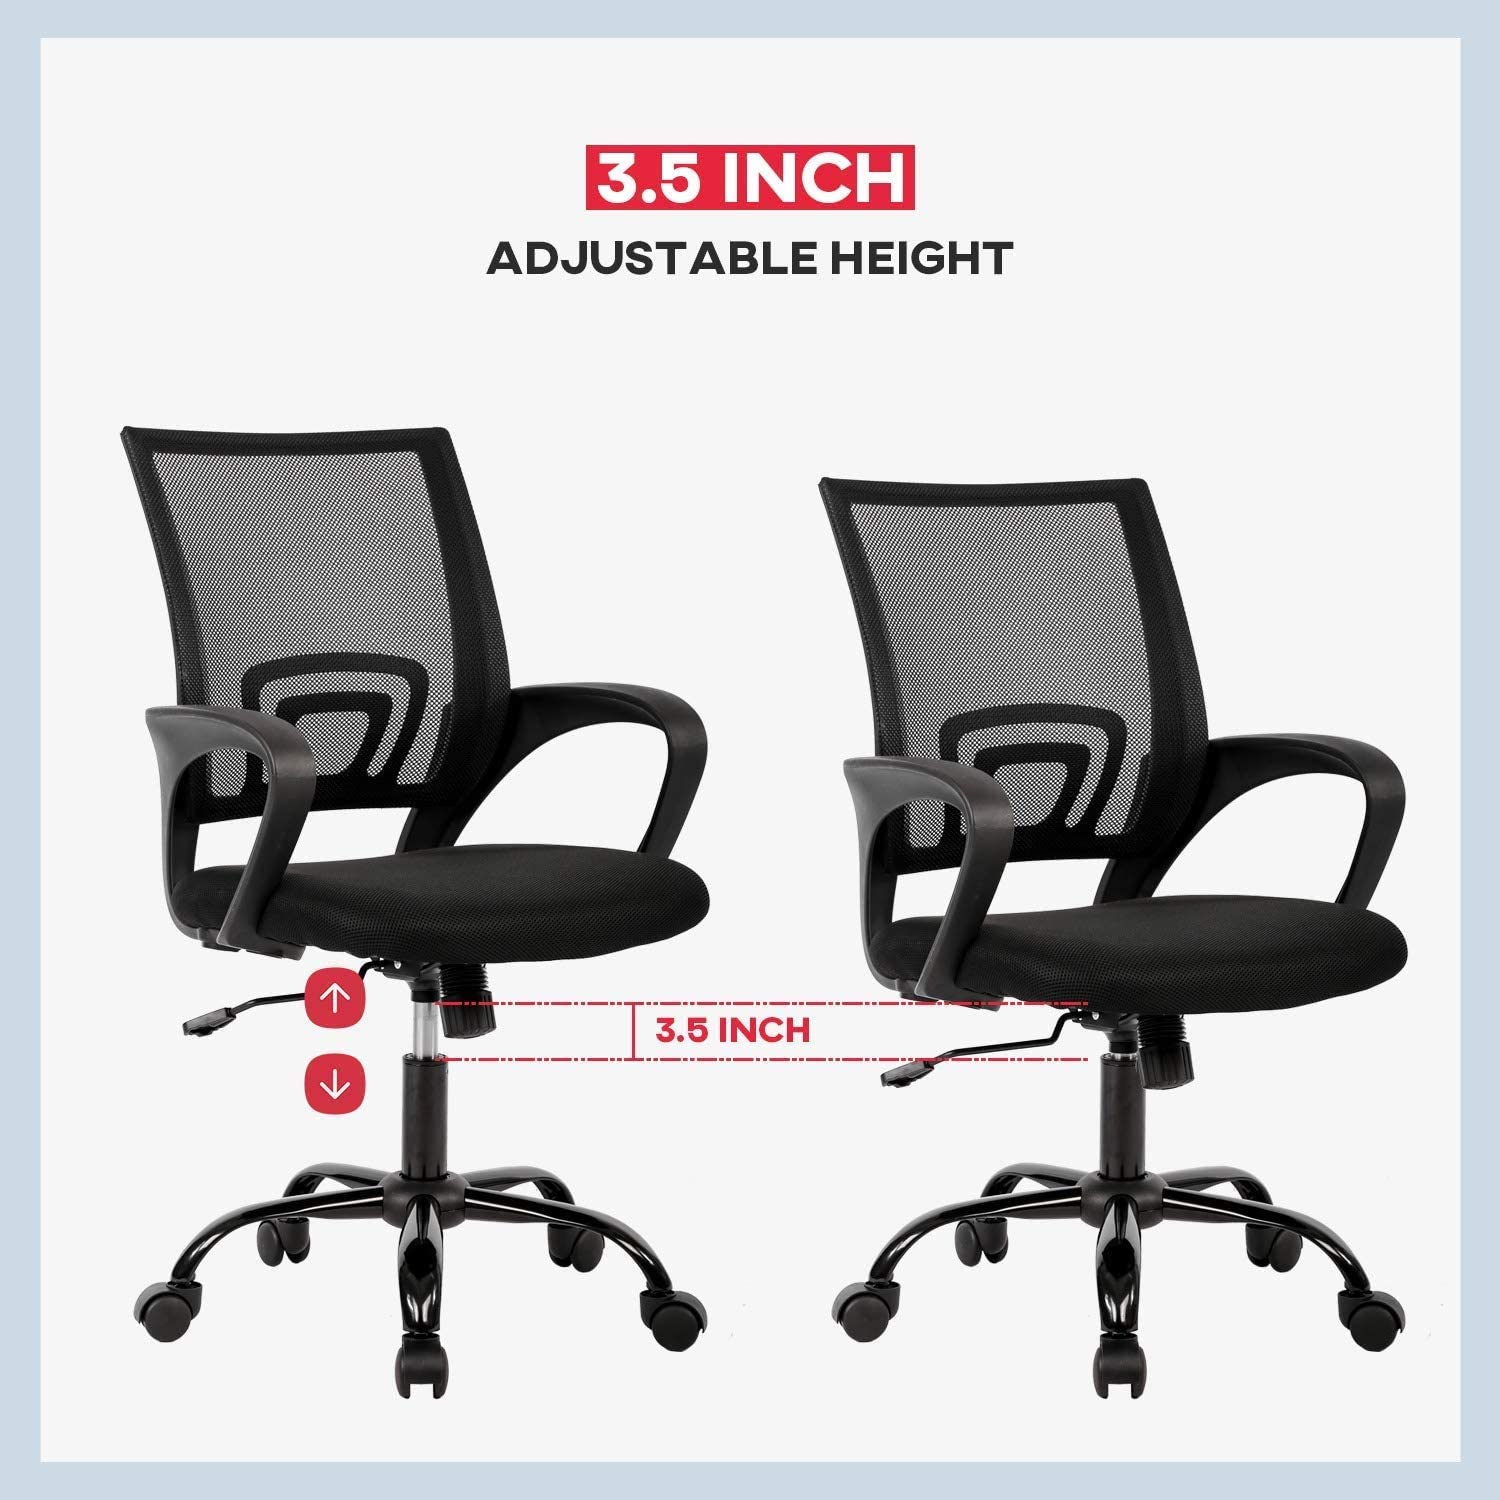 Office Chair Ergonomic Desk Chair Mesh Computer Chair Lumbar Support Modern Executive Adjustable Stool Rolling Swivel Chair for Back Pain, Black: Furniture & Decor